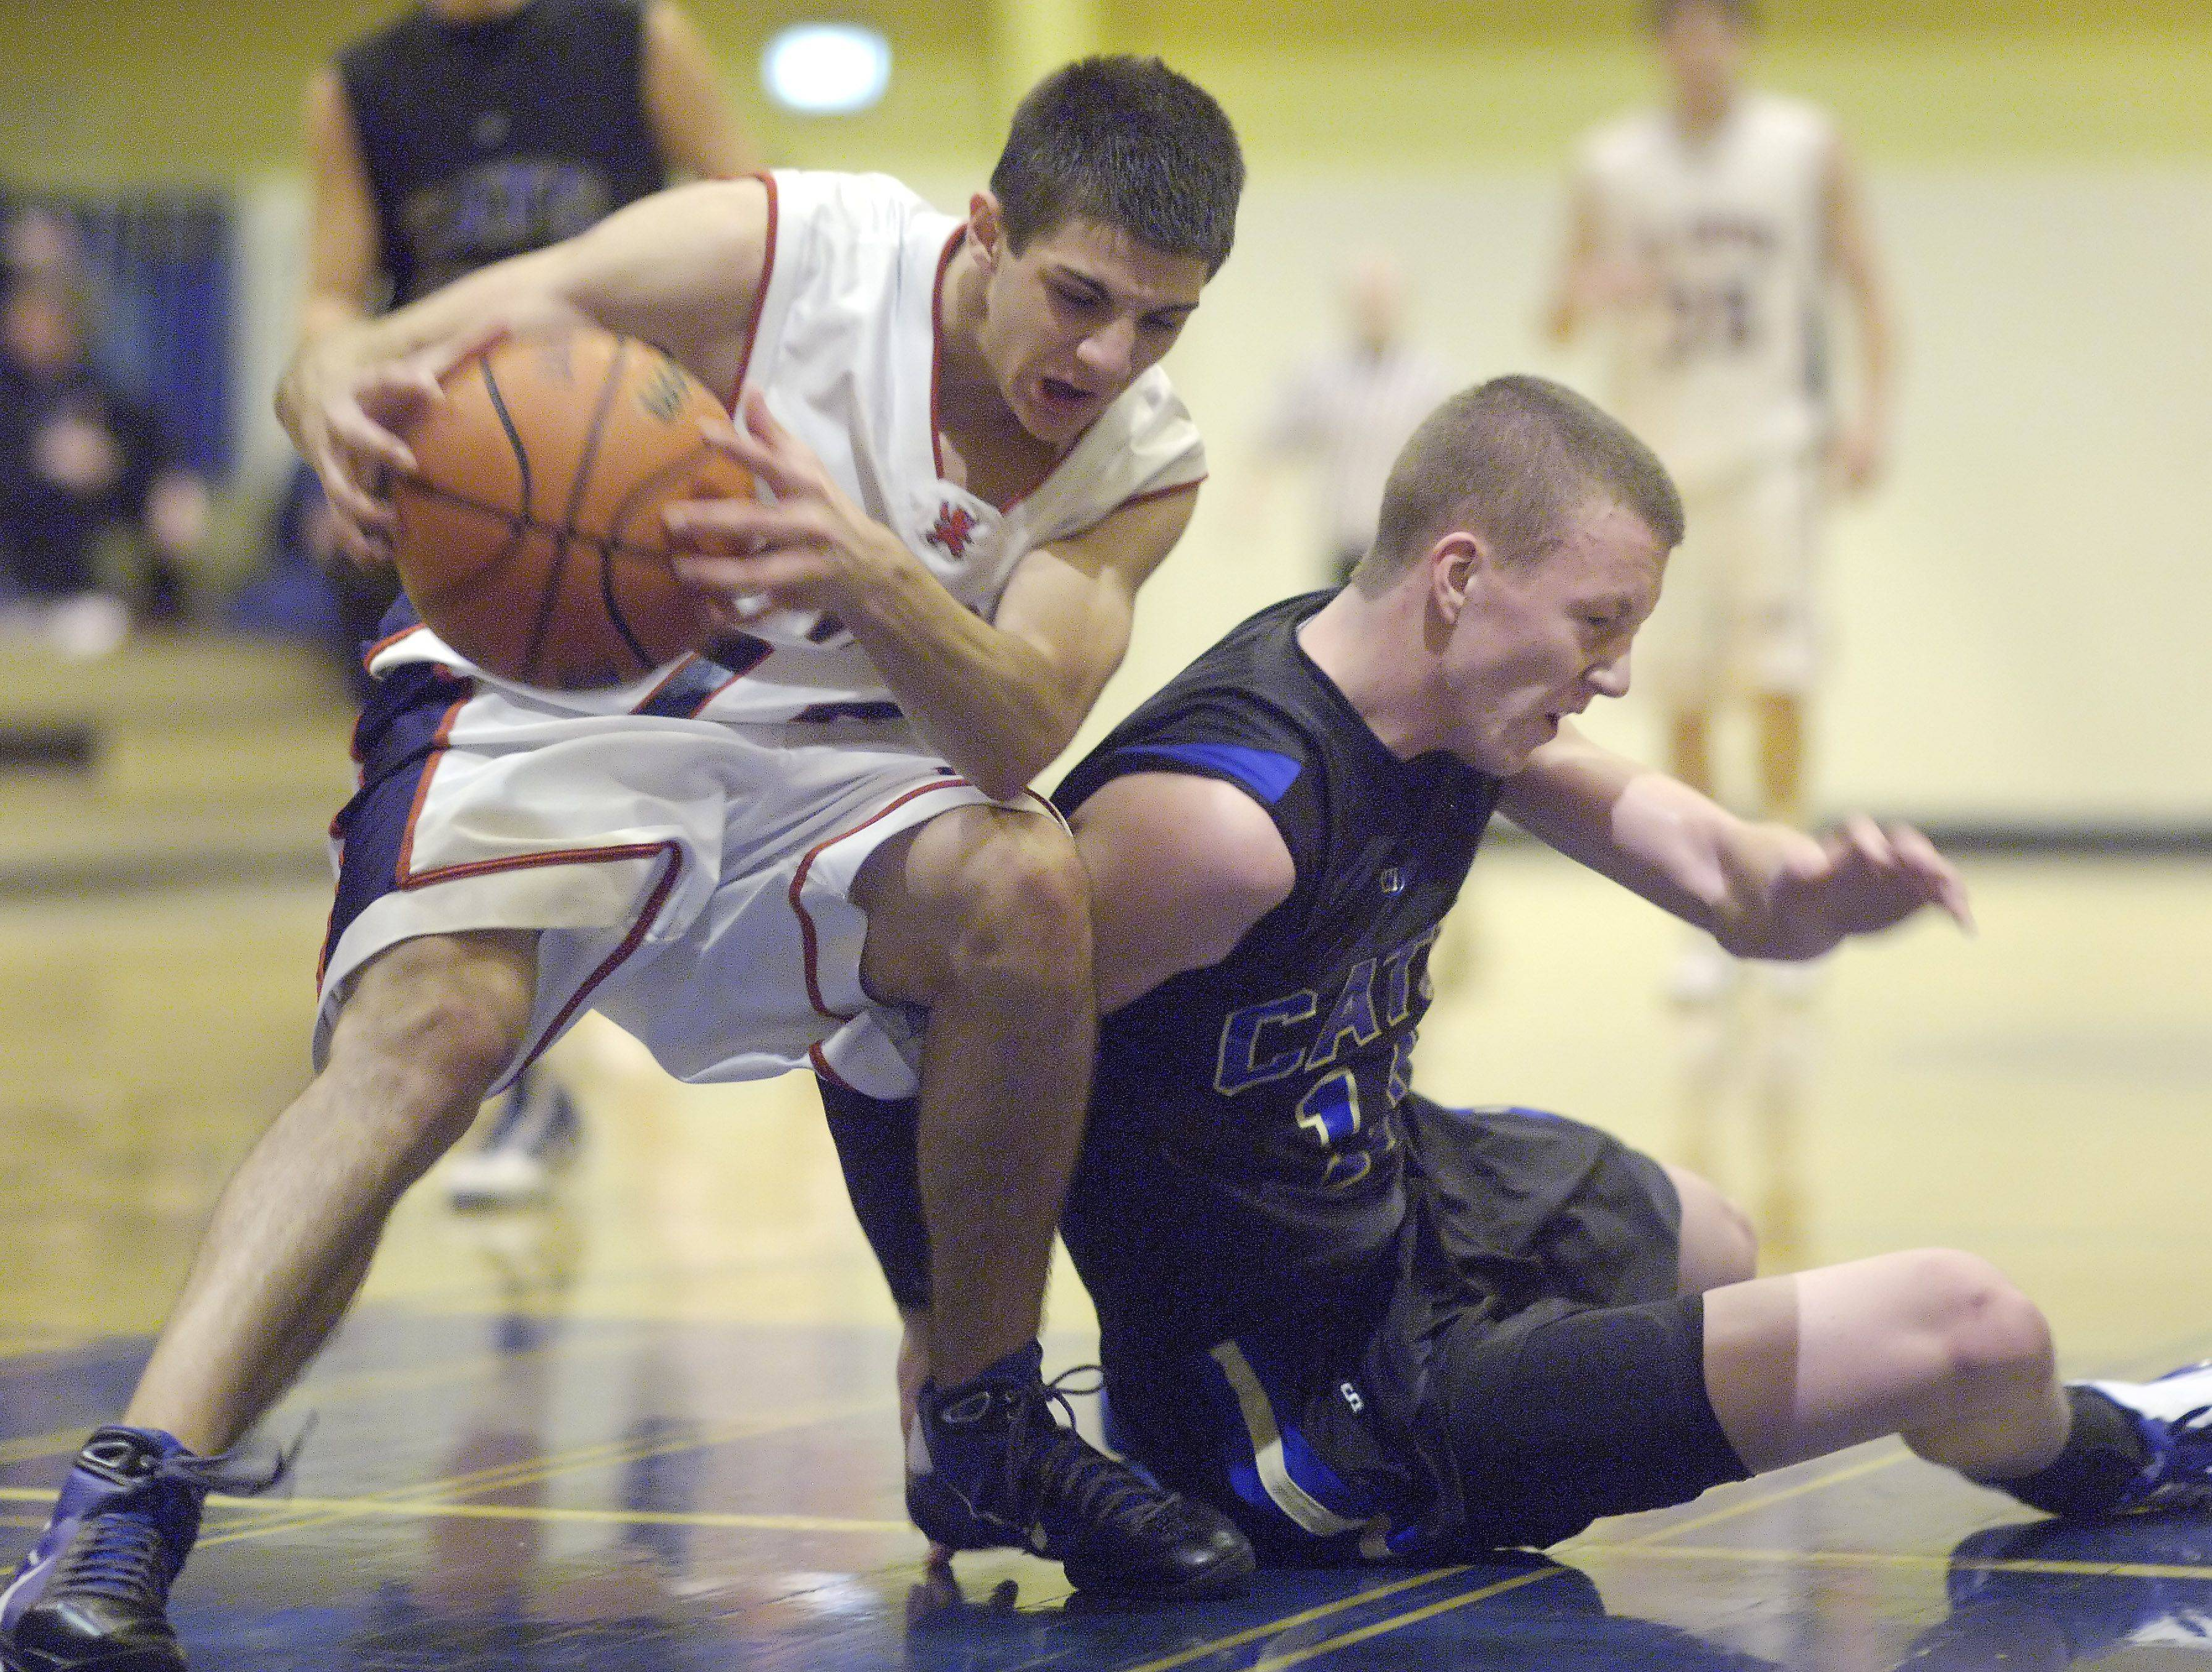 St. Viator's D.J. Morris, left, gets to a loose ball ahead of Wheeling's Ricky Schwind during the Wheeling Tournament Wednesday.